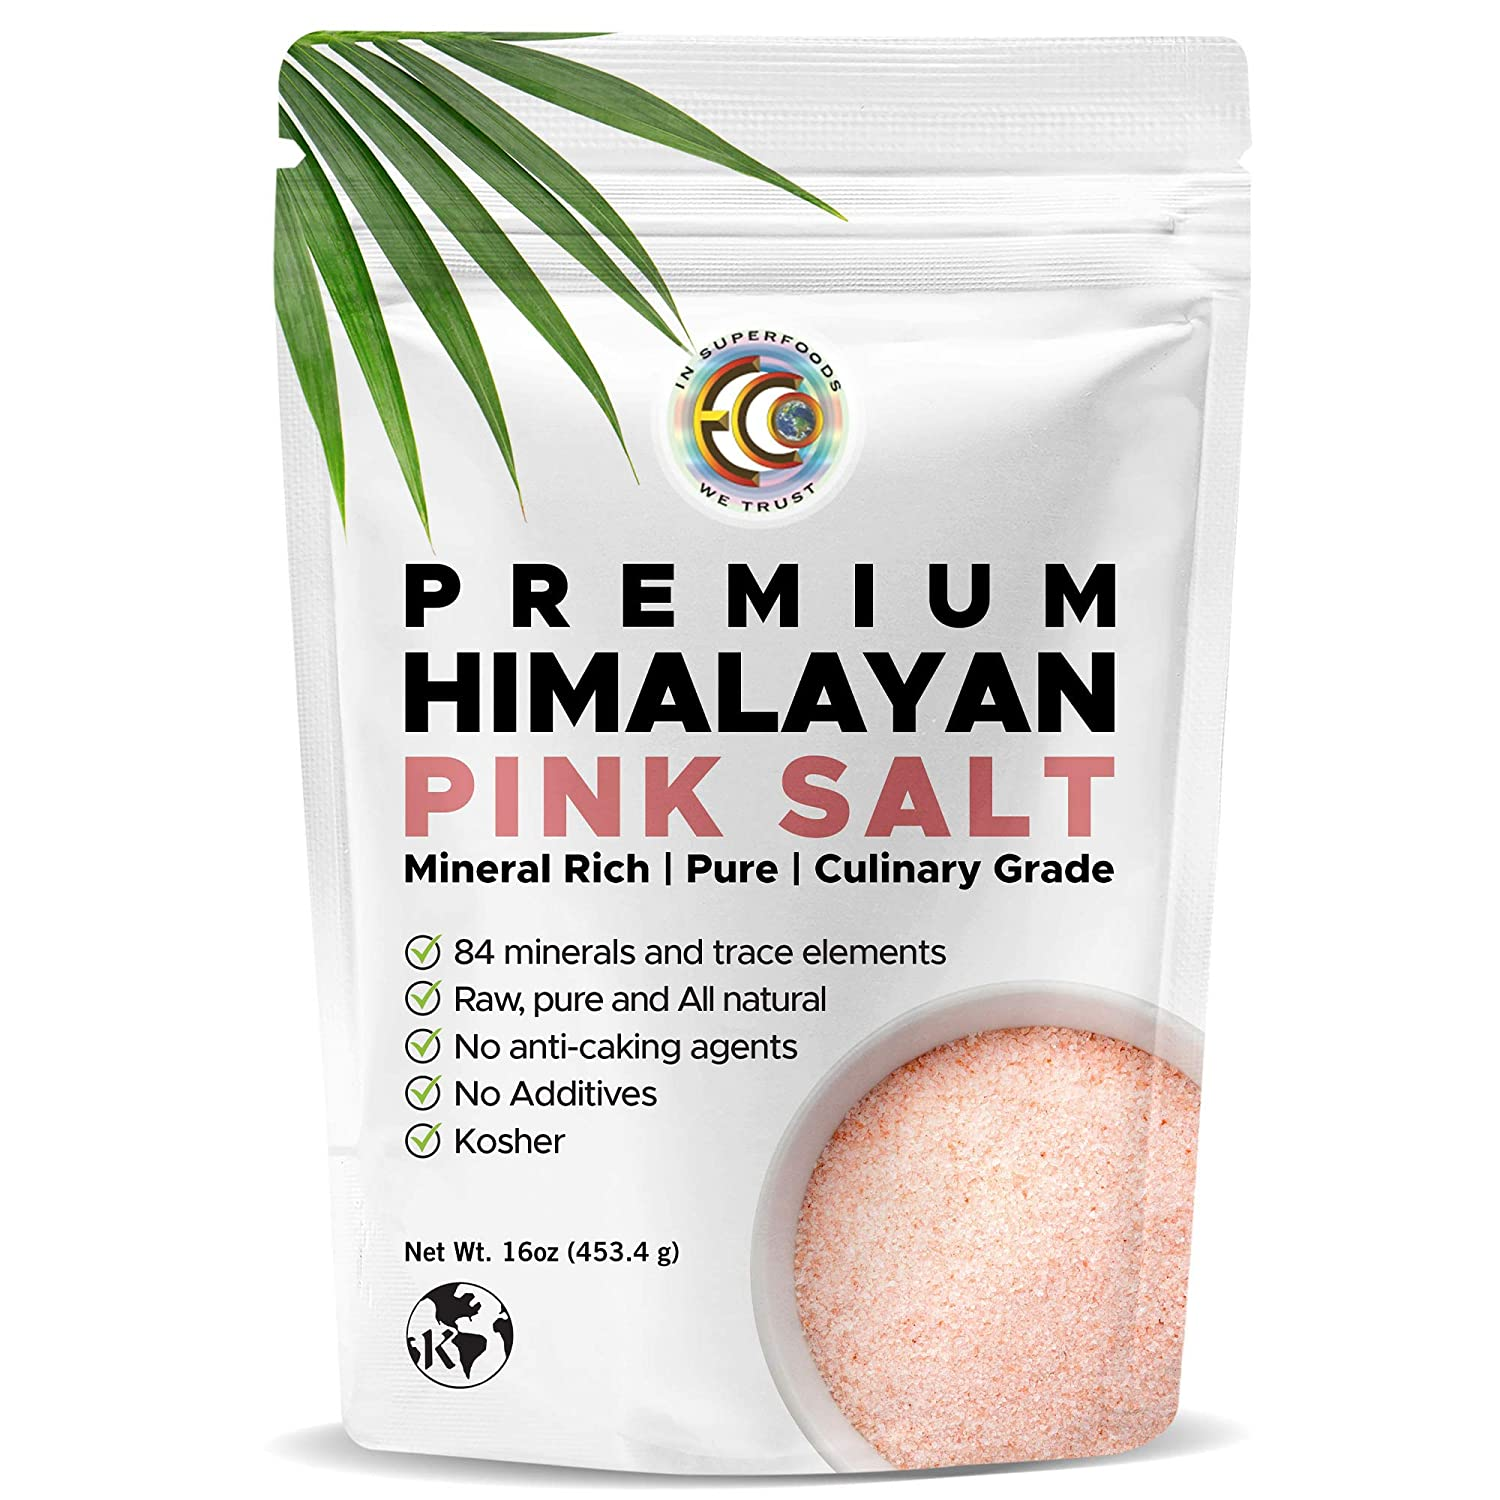 Earth Circle Organics Premium Himalayan Pink Fine Grain Salt, No Anti-Caking Agents, Pure Culinary Grade - Kosher, Nutrient and Mineral Dense, 1 Pound : Rock Salt : Grocery & Gourmet Food